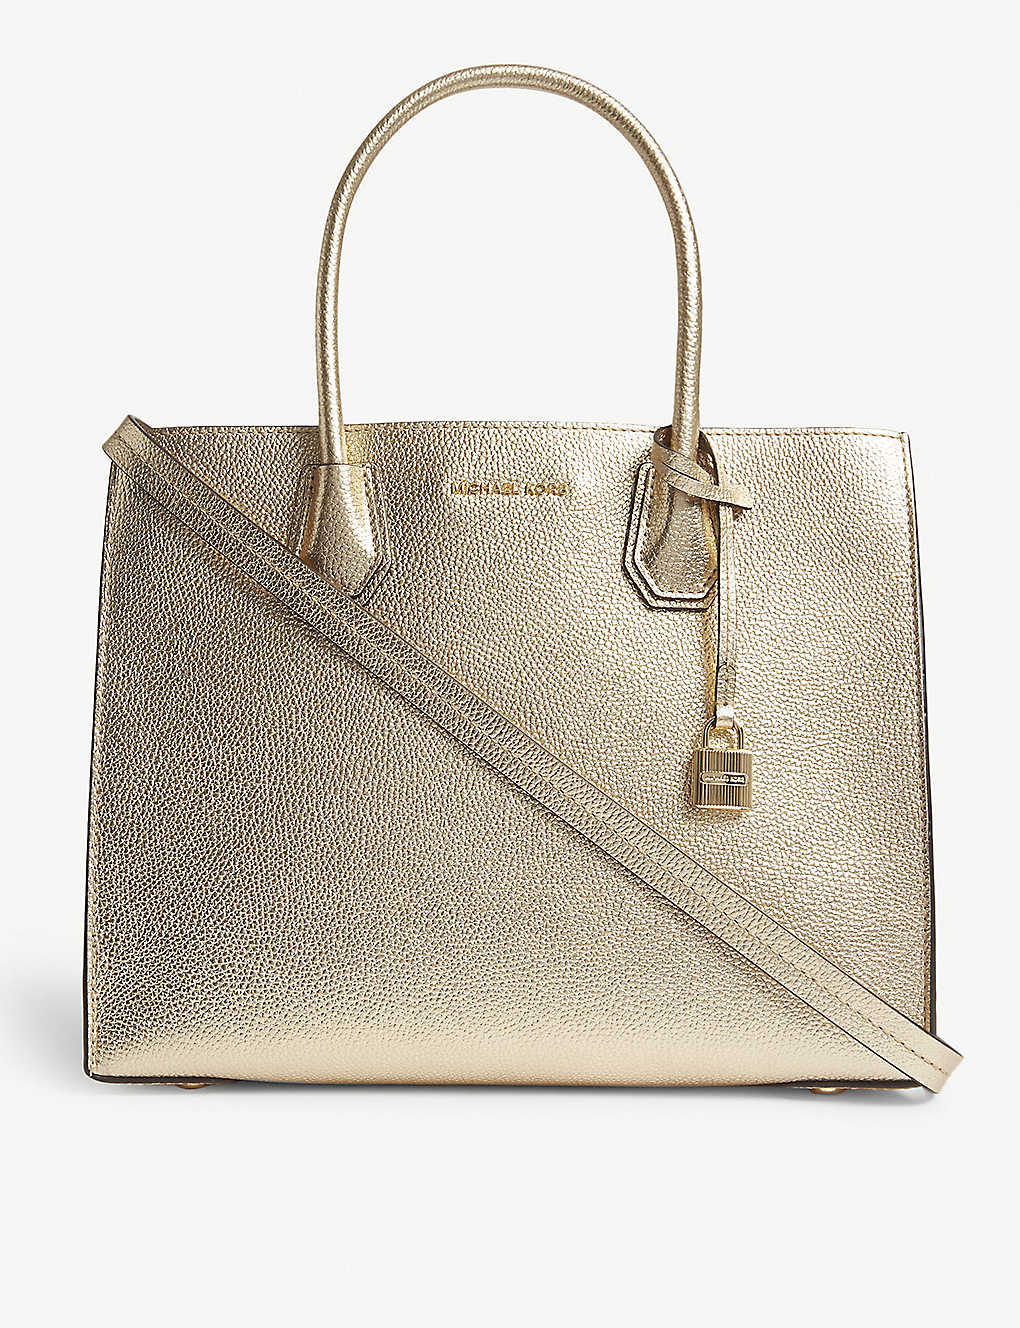 aa43778d835871 MICHAEL MICHAEL KORS - Mercer large leather tote | Selfridges.com